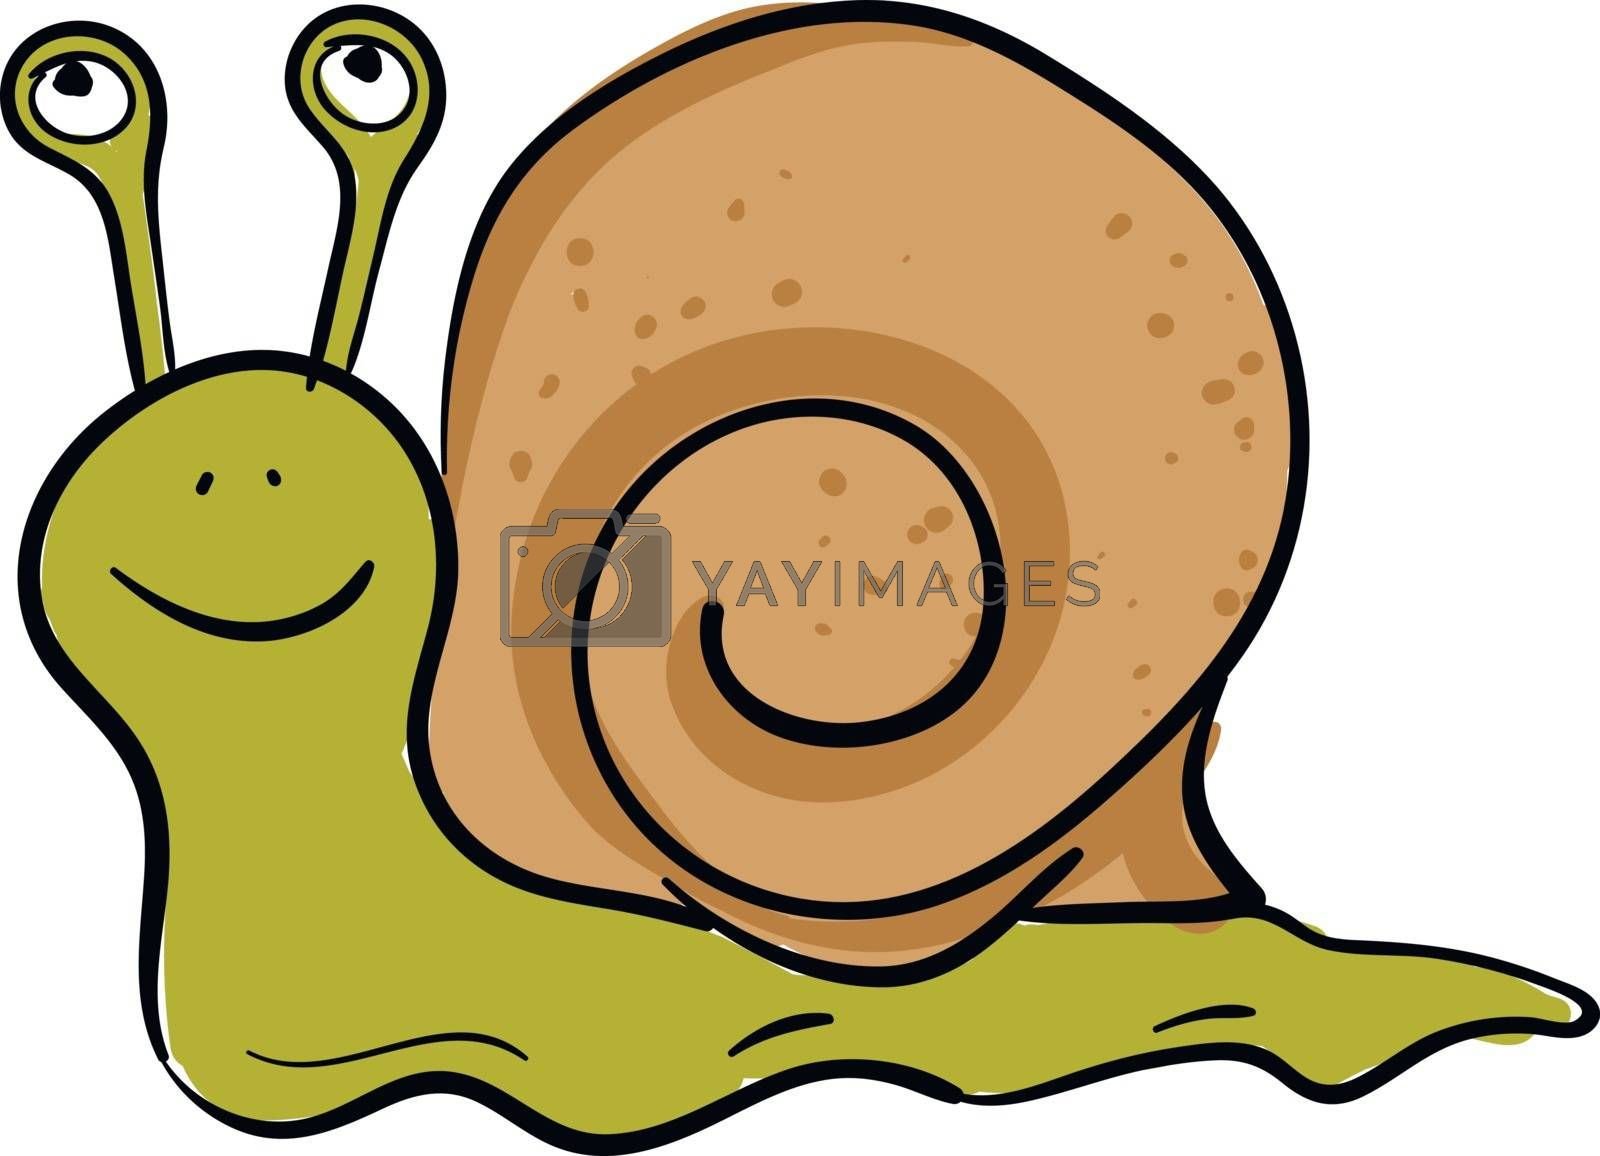 Royalty free image of Emoji of a happy green-colored snail vector or color illustratio by Morphart